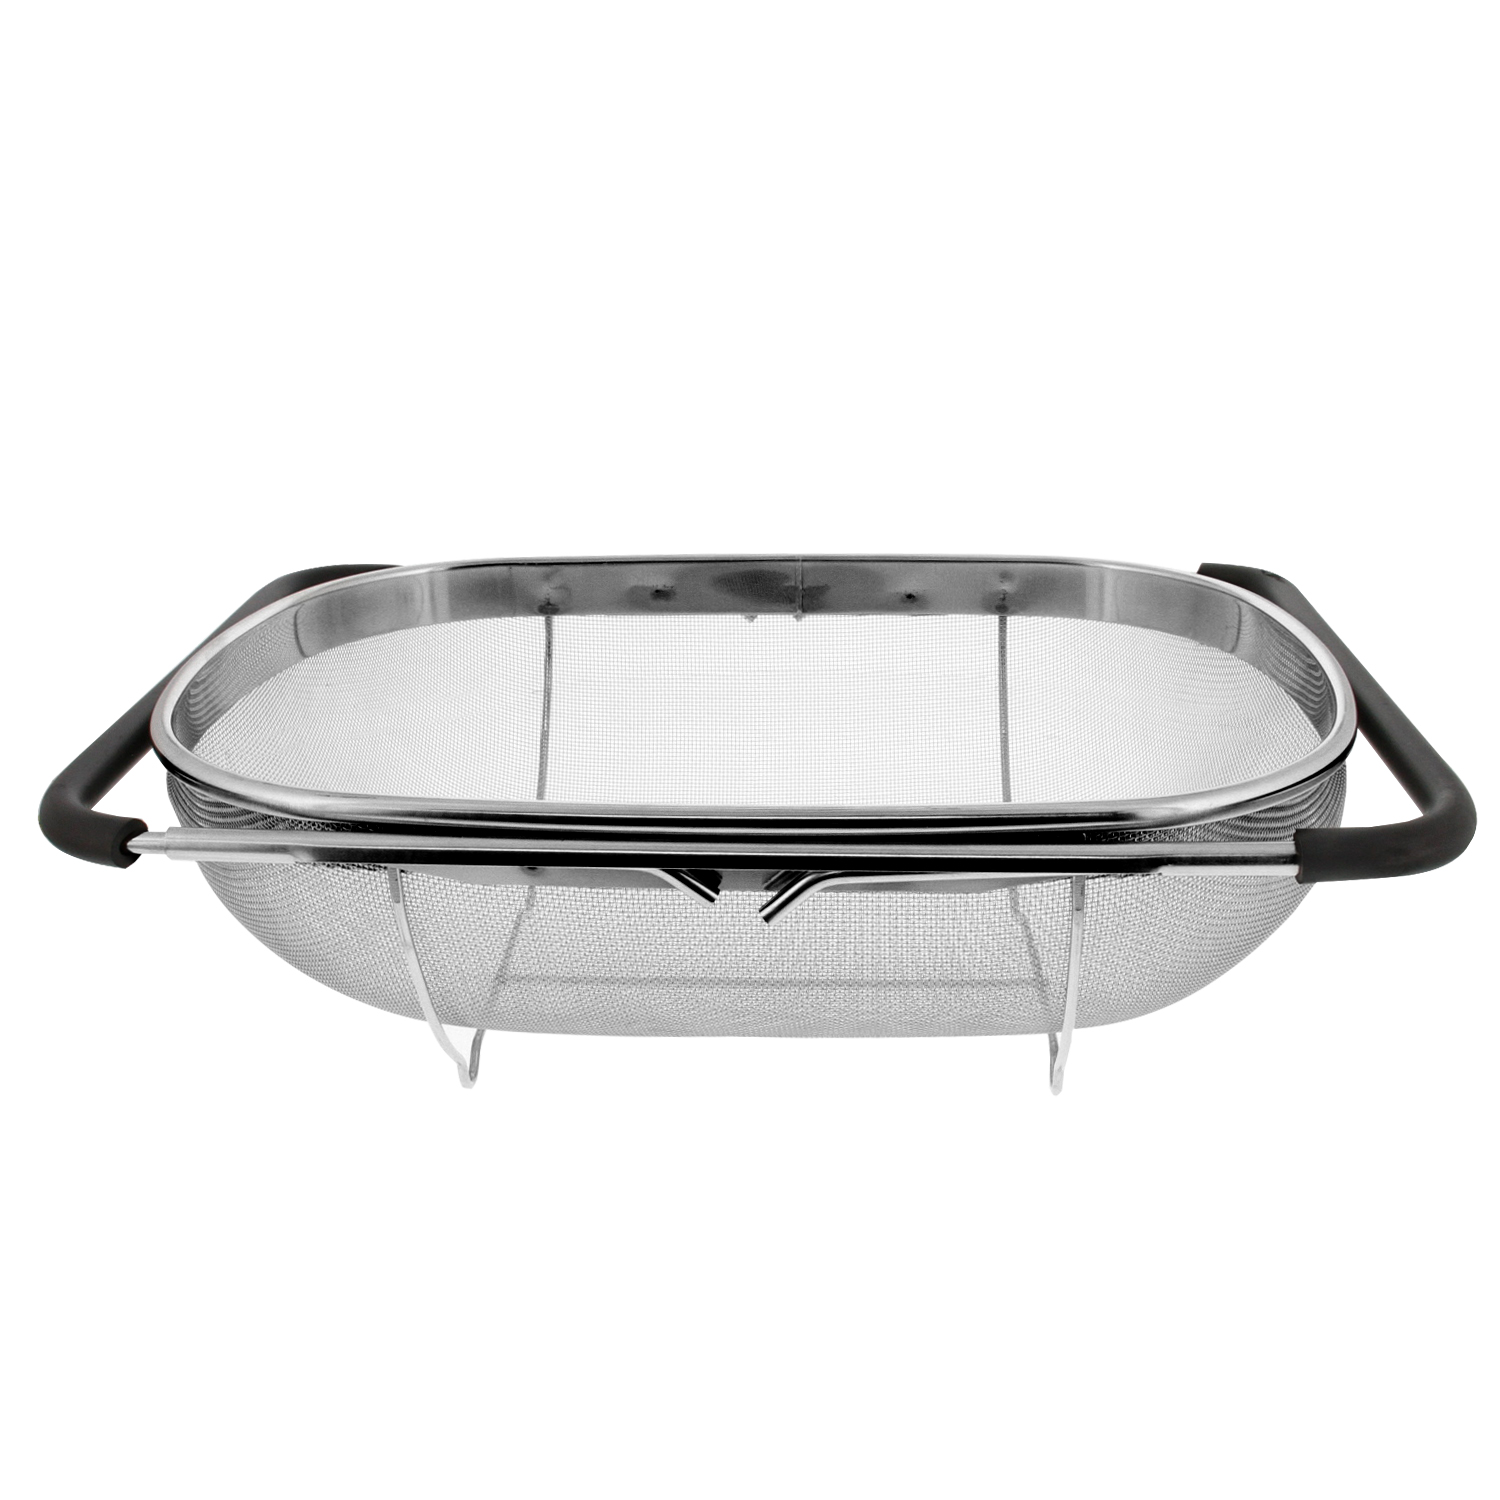 Over the sink stainless steel oval fine mesh colander